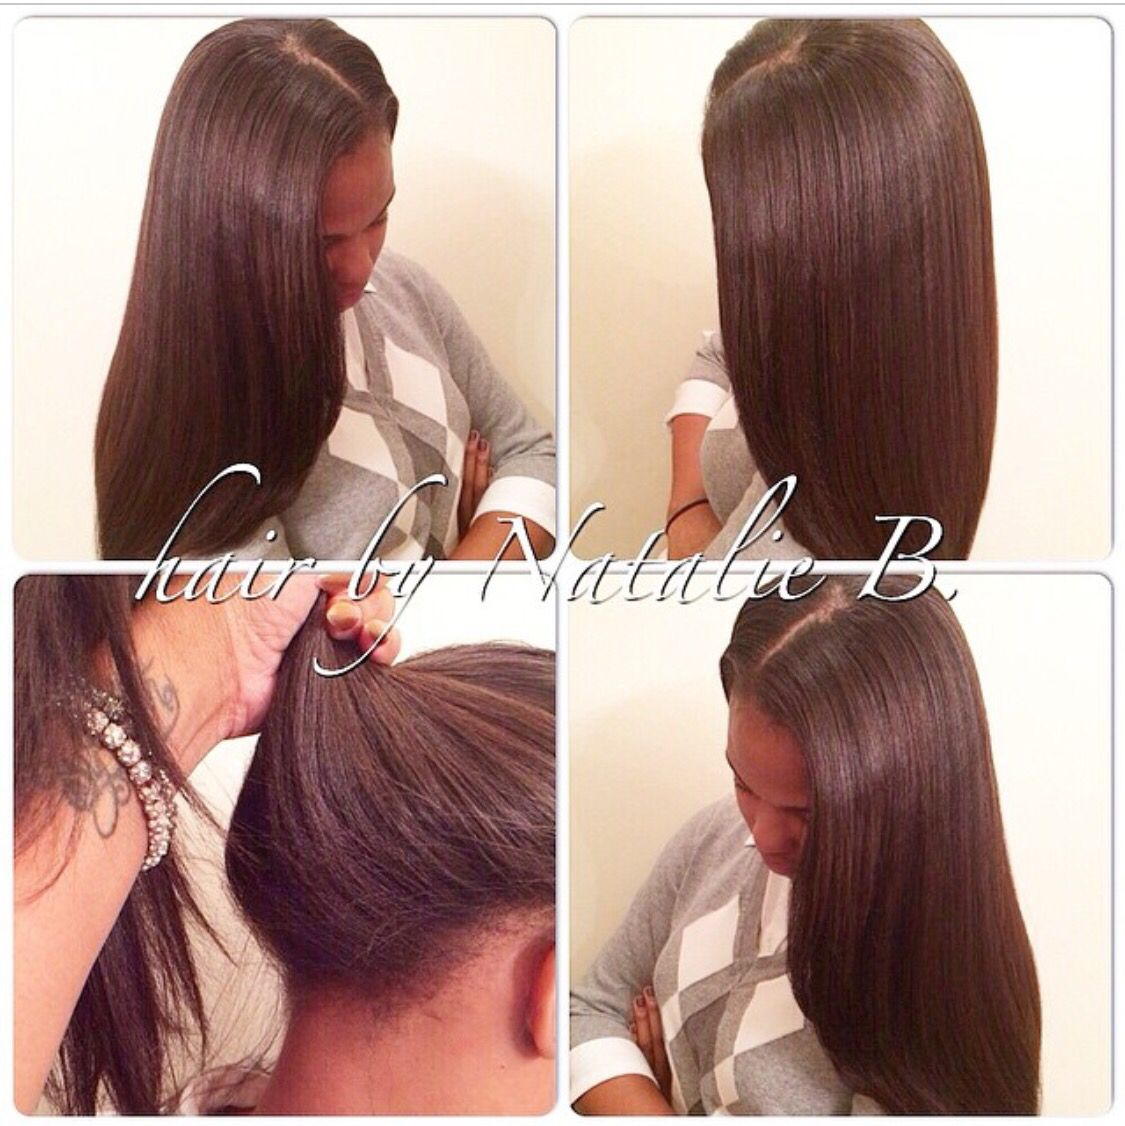 Most realistic looking sew ins in chicagolandrfect pony sew most realistic looking sew ins in chicagolandrfect pony sew natural haircarepony hairquick weave pmusecretfo Images